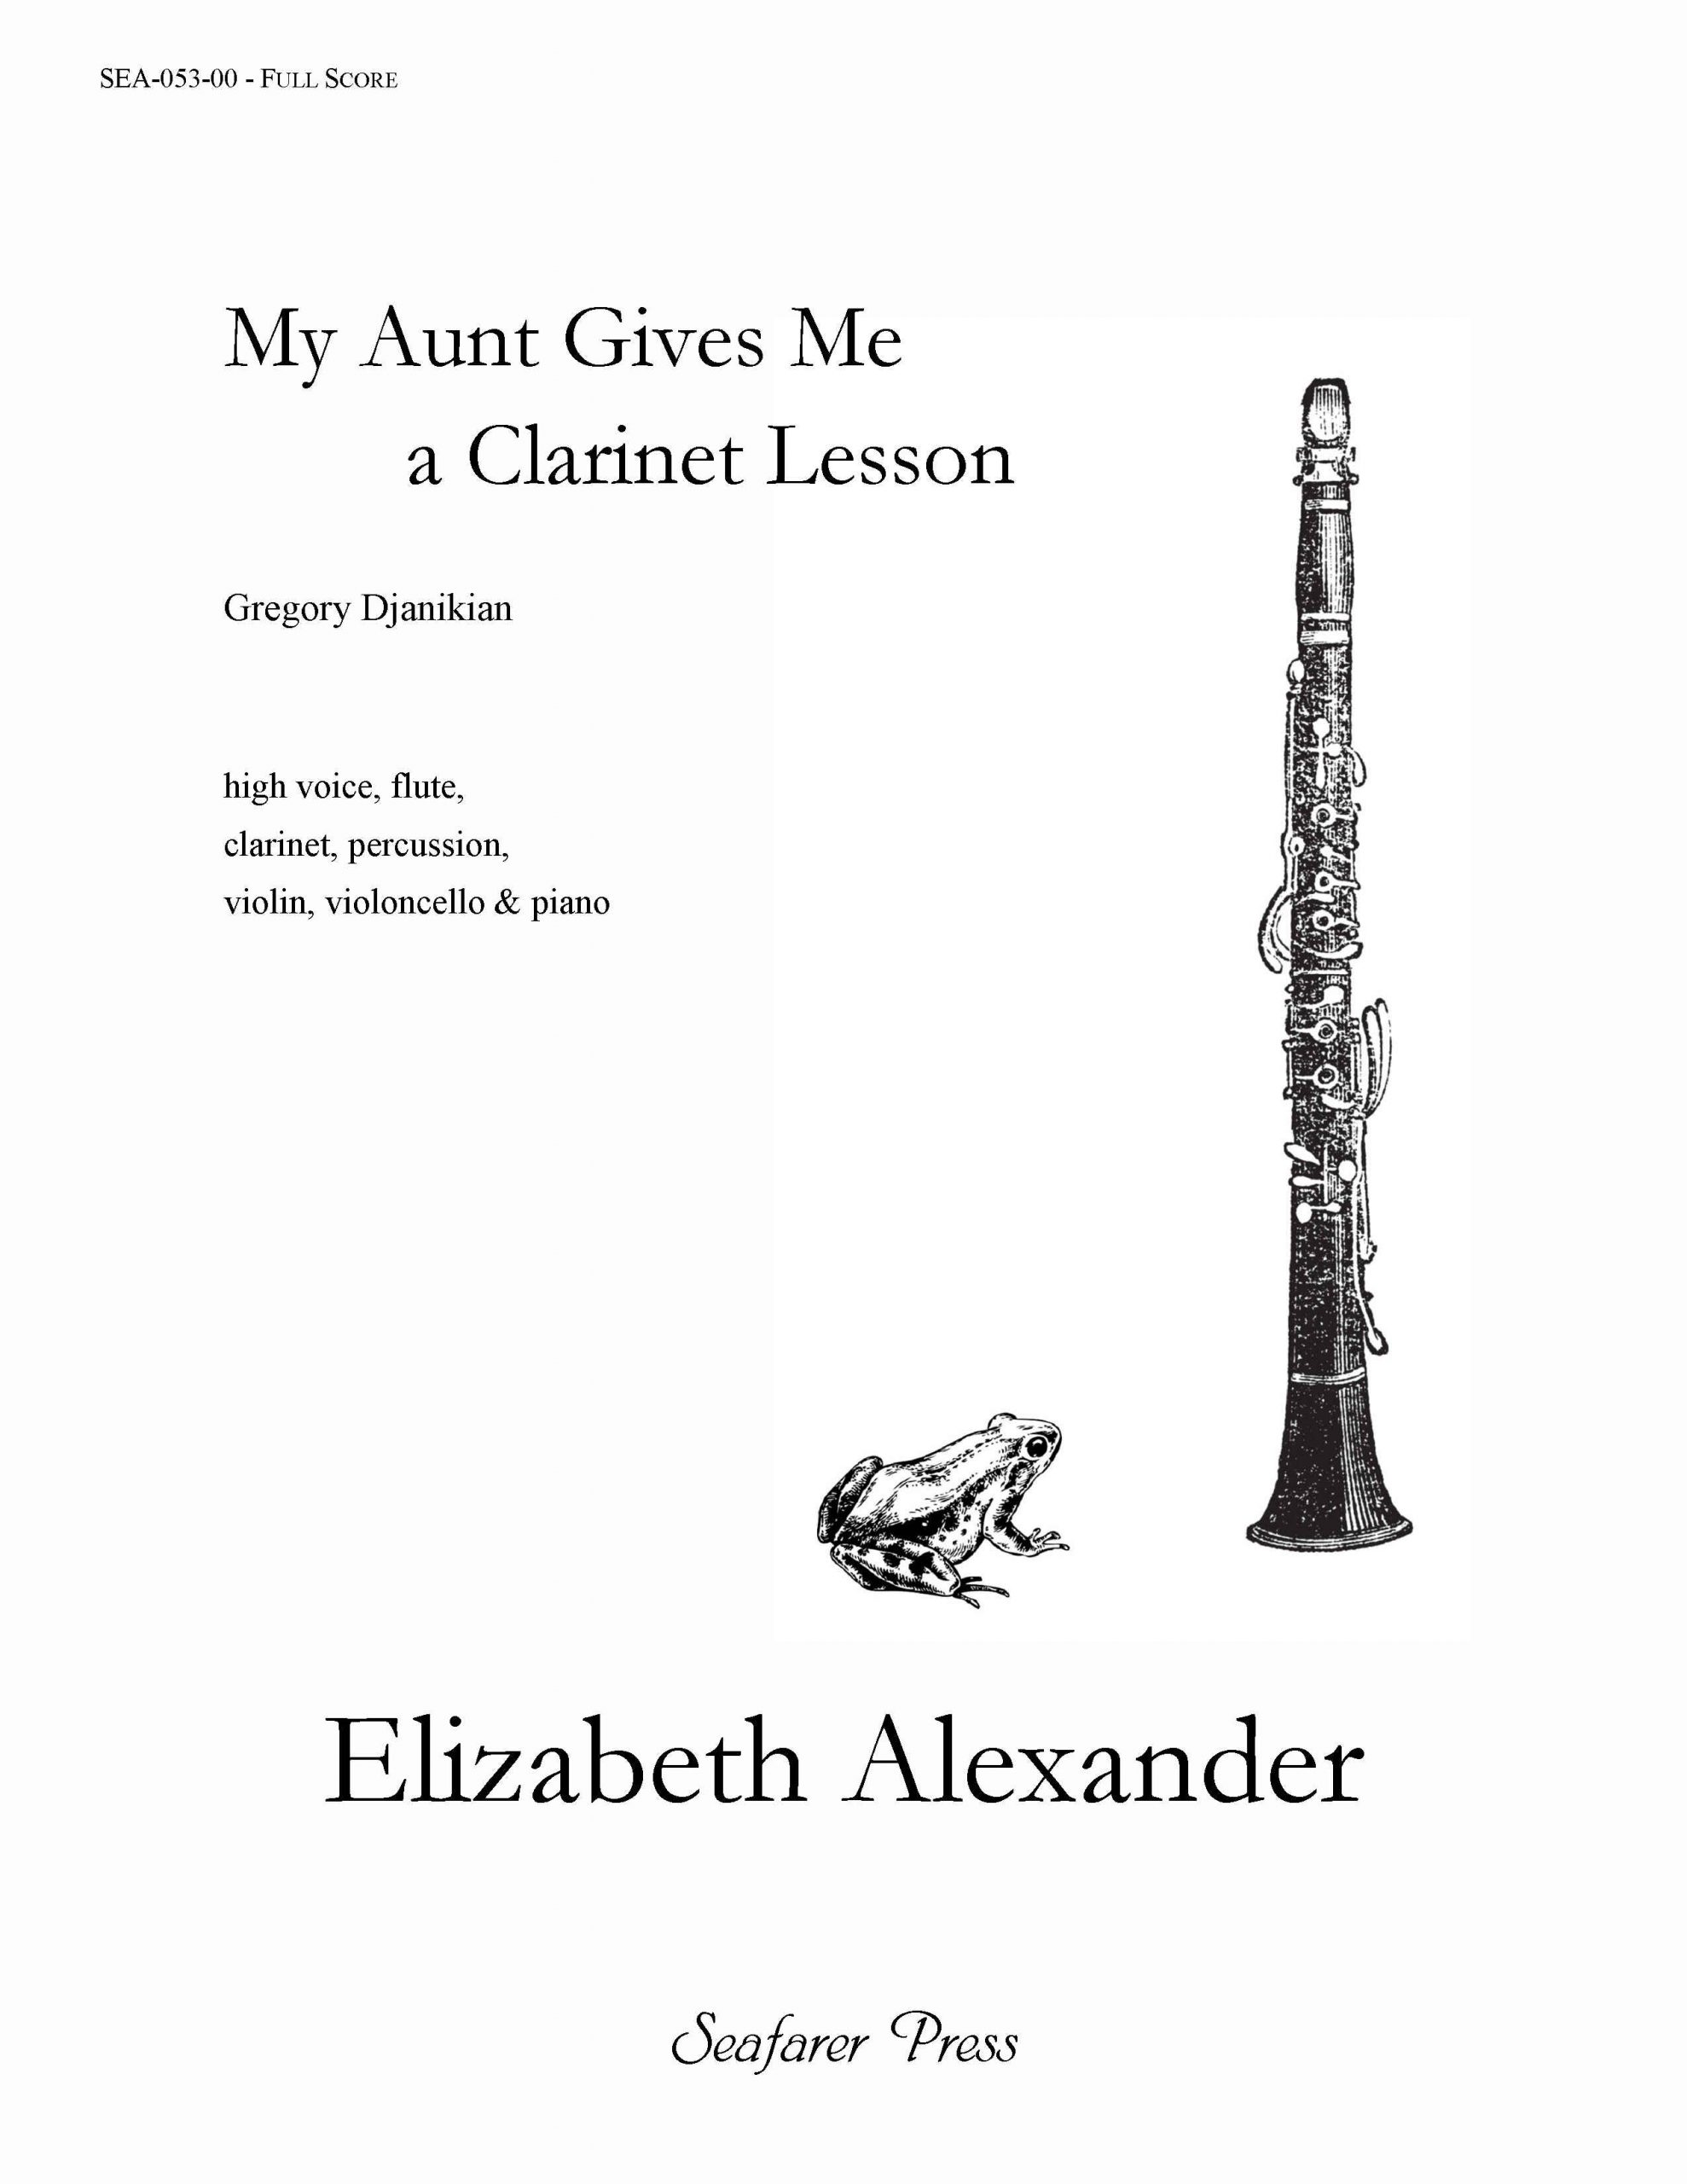 SEA-053-00 - My Aunt Gives Me a Clarinet Lesson